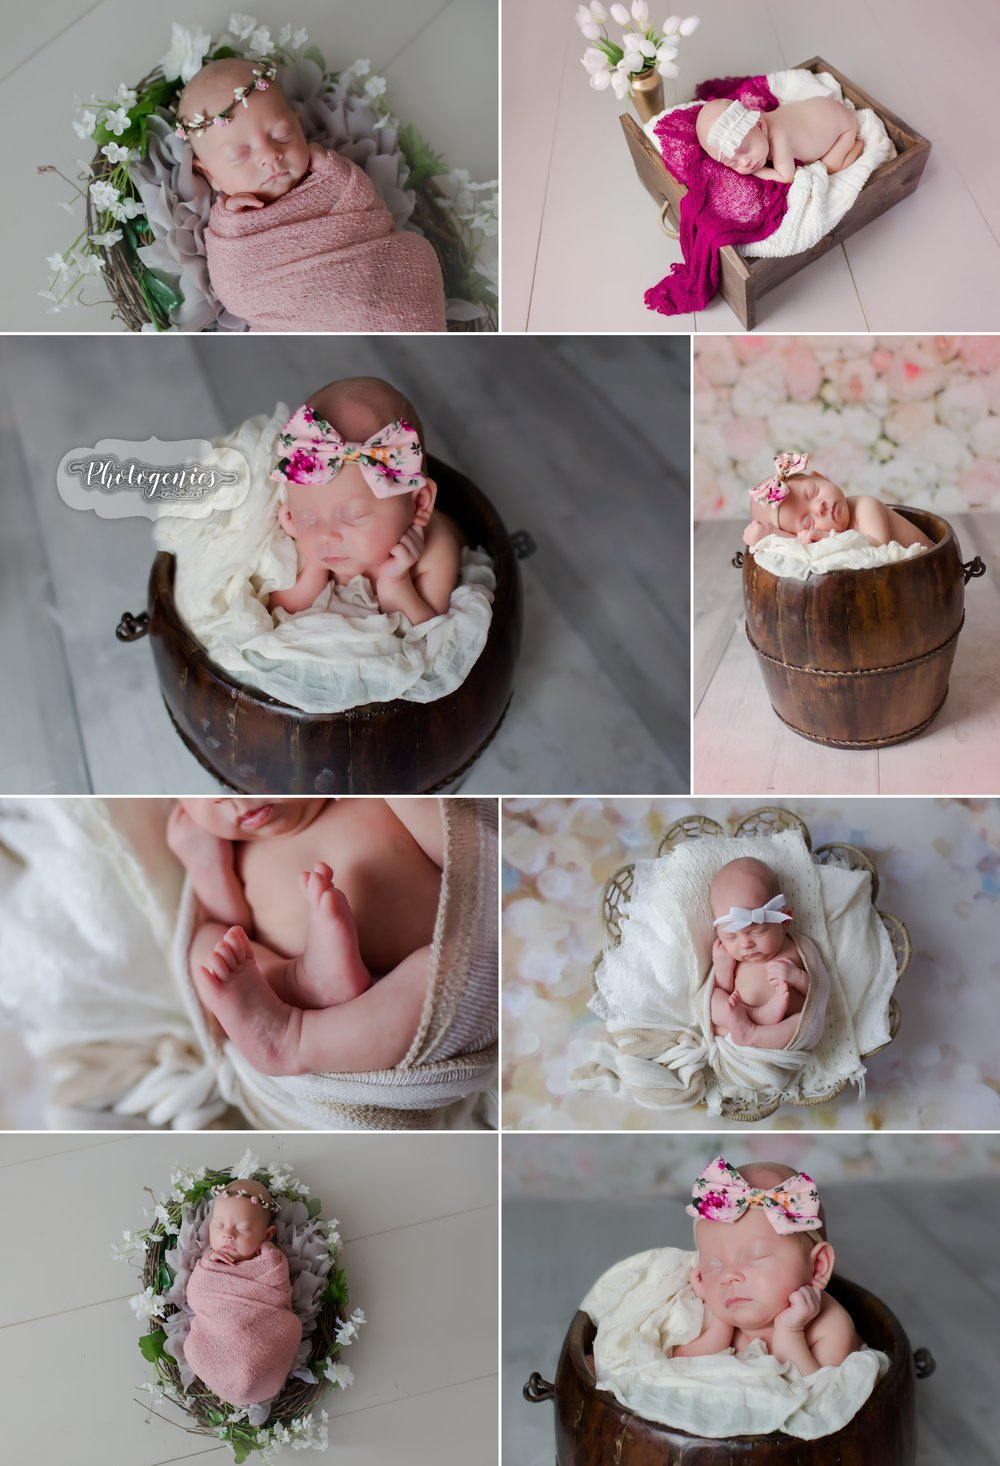 newborn_girl_photography_unique_ideas_props_flowers_organic_simple_st_louis_mo_newborn_photographer 2